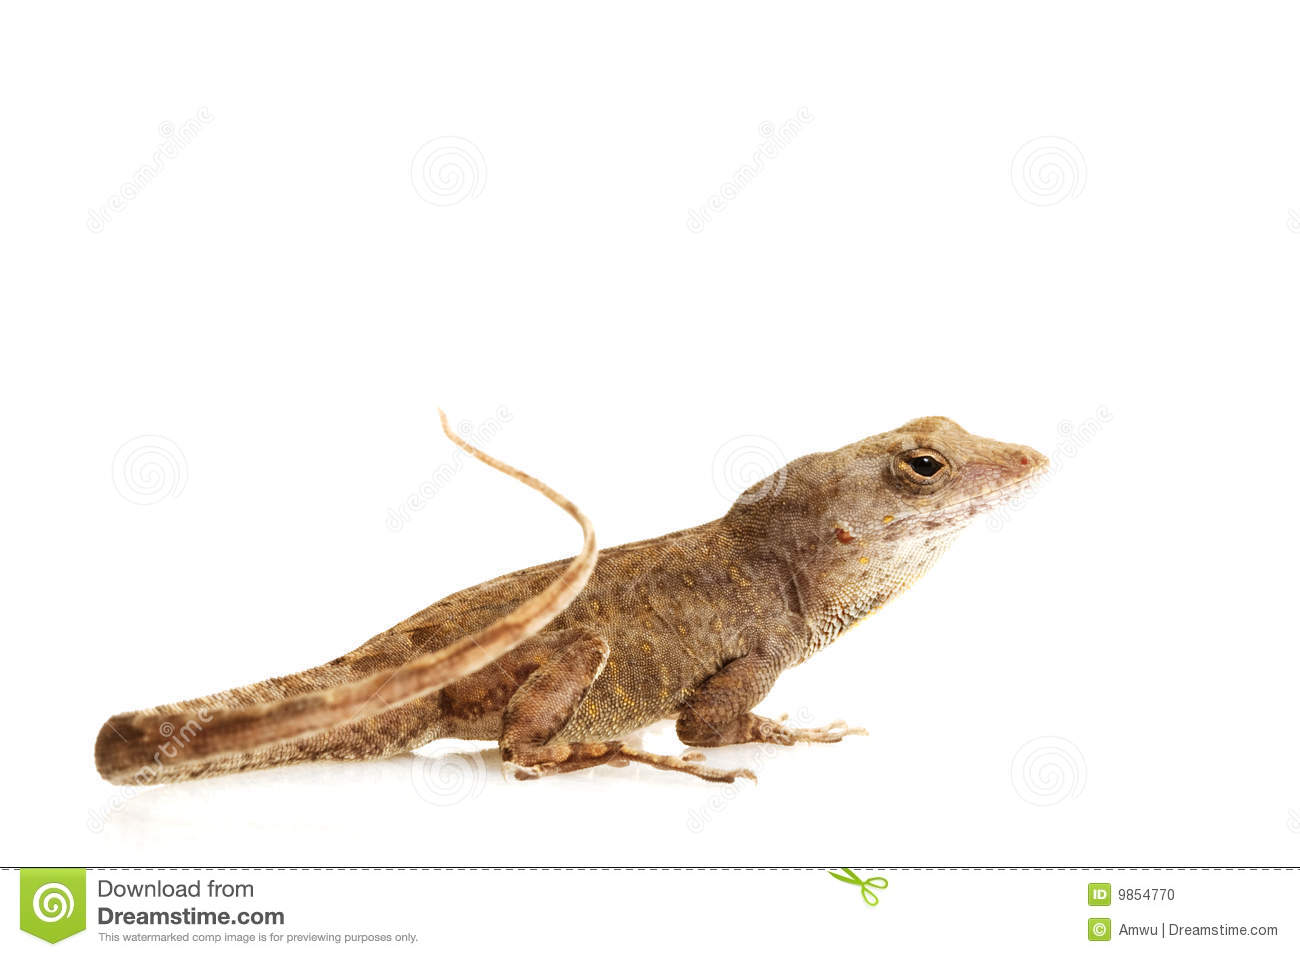 Green Anole clipart #15, Download drawings